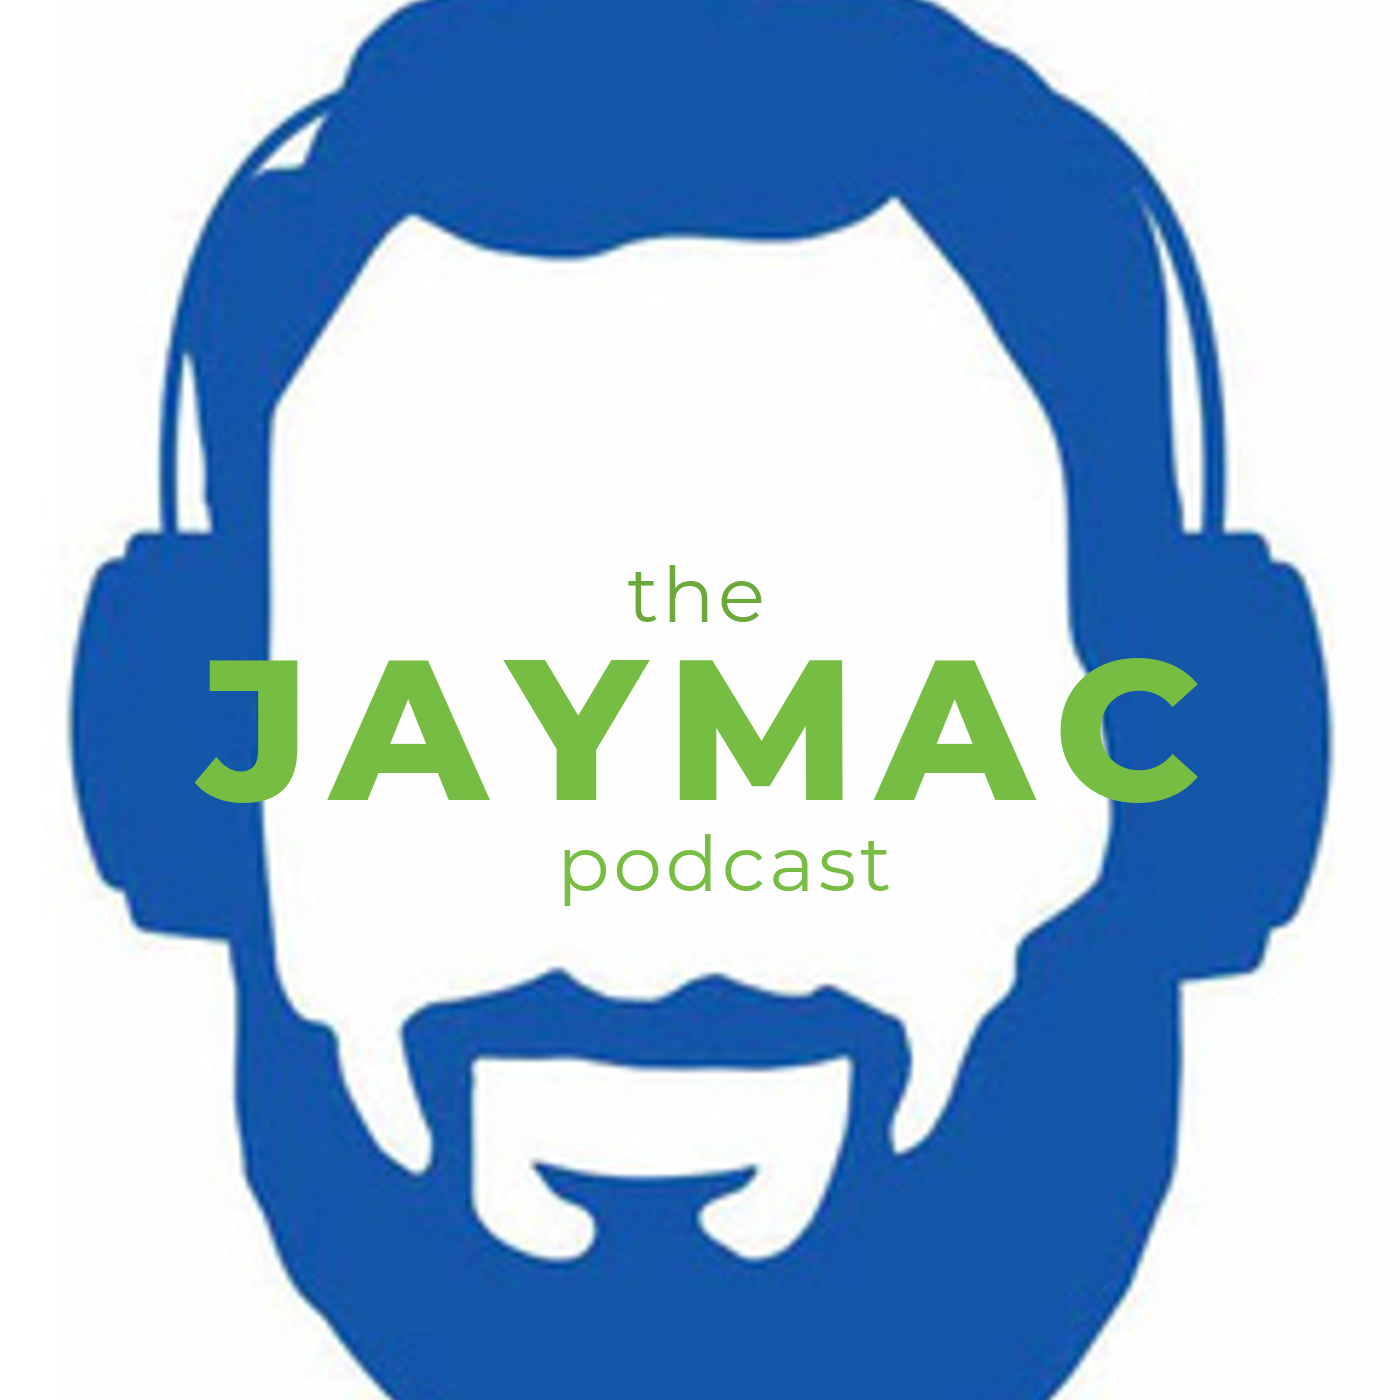 The JayMac Podcast